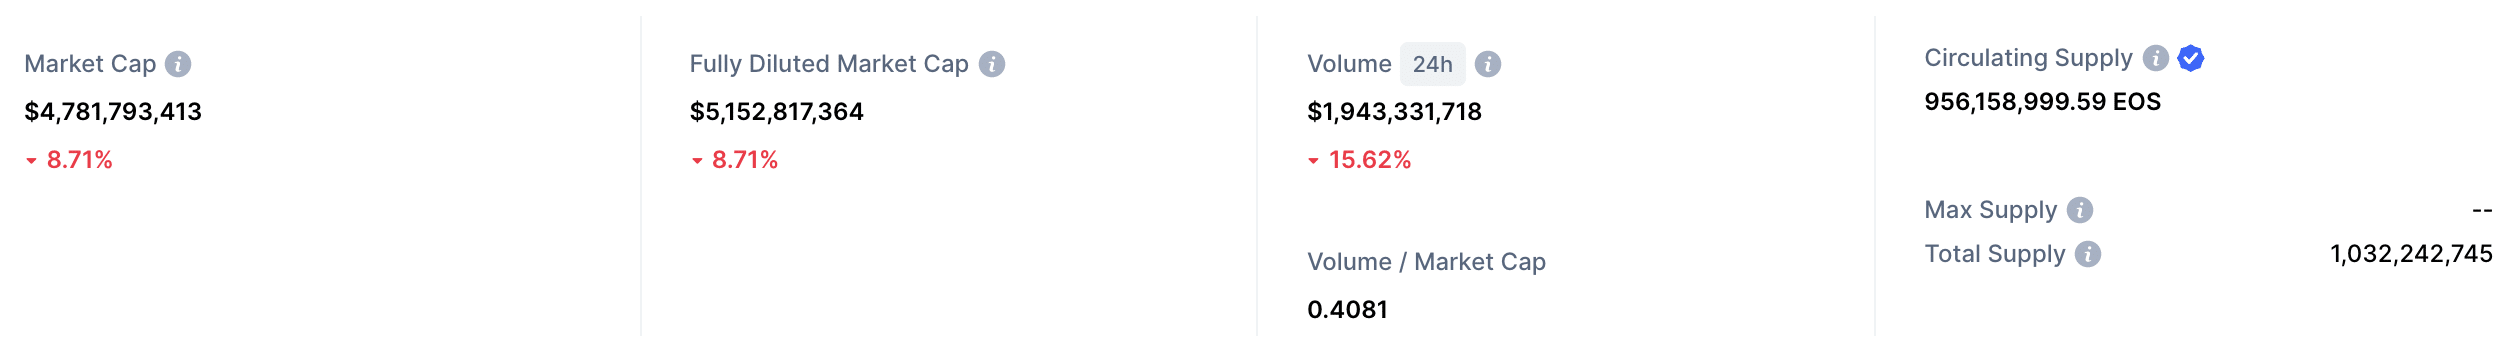 eos stats